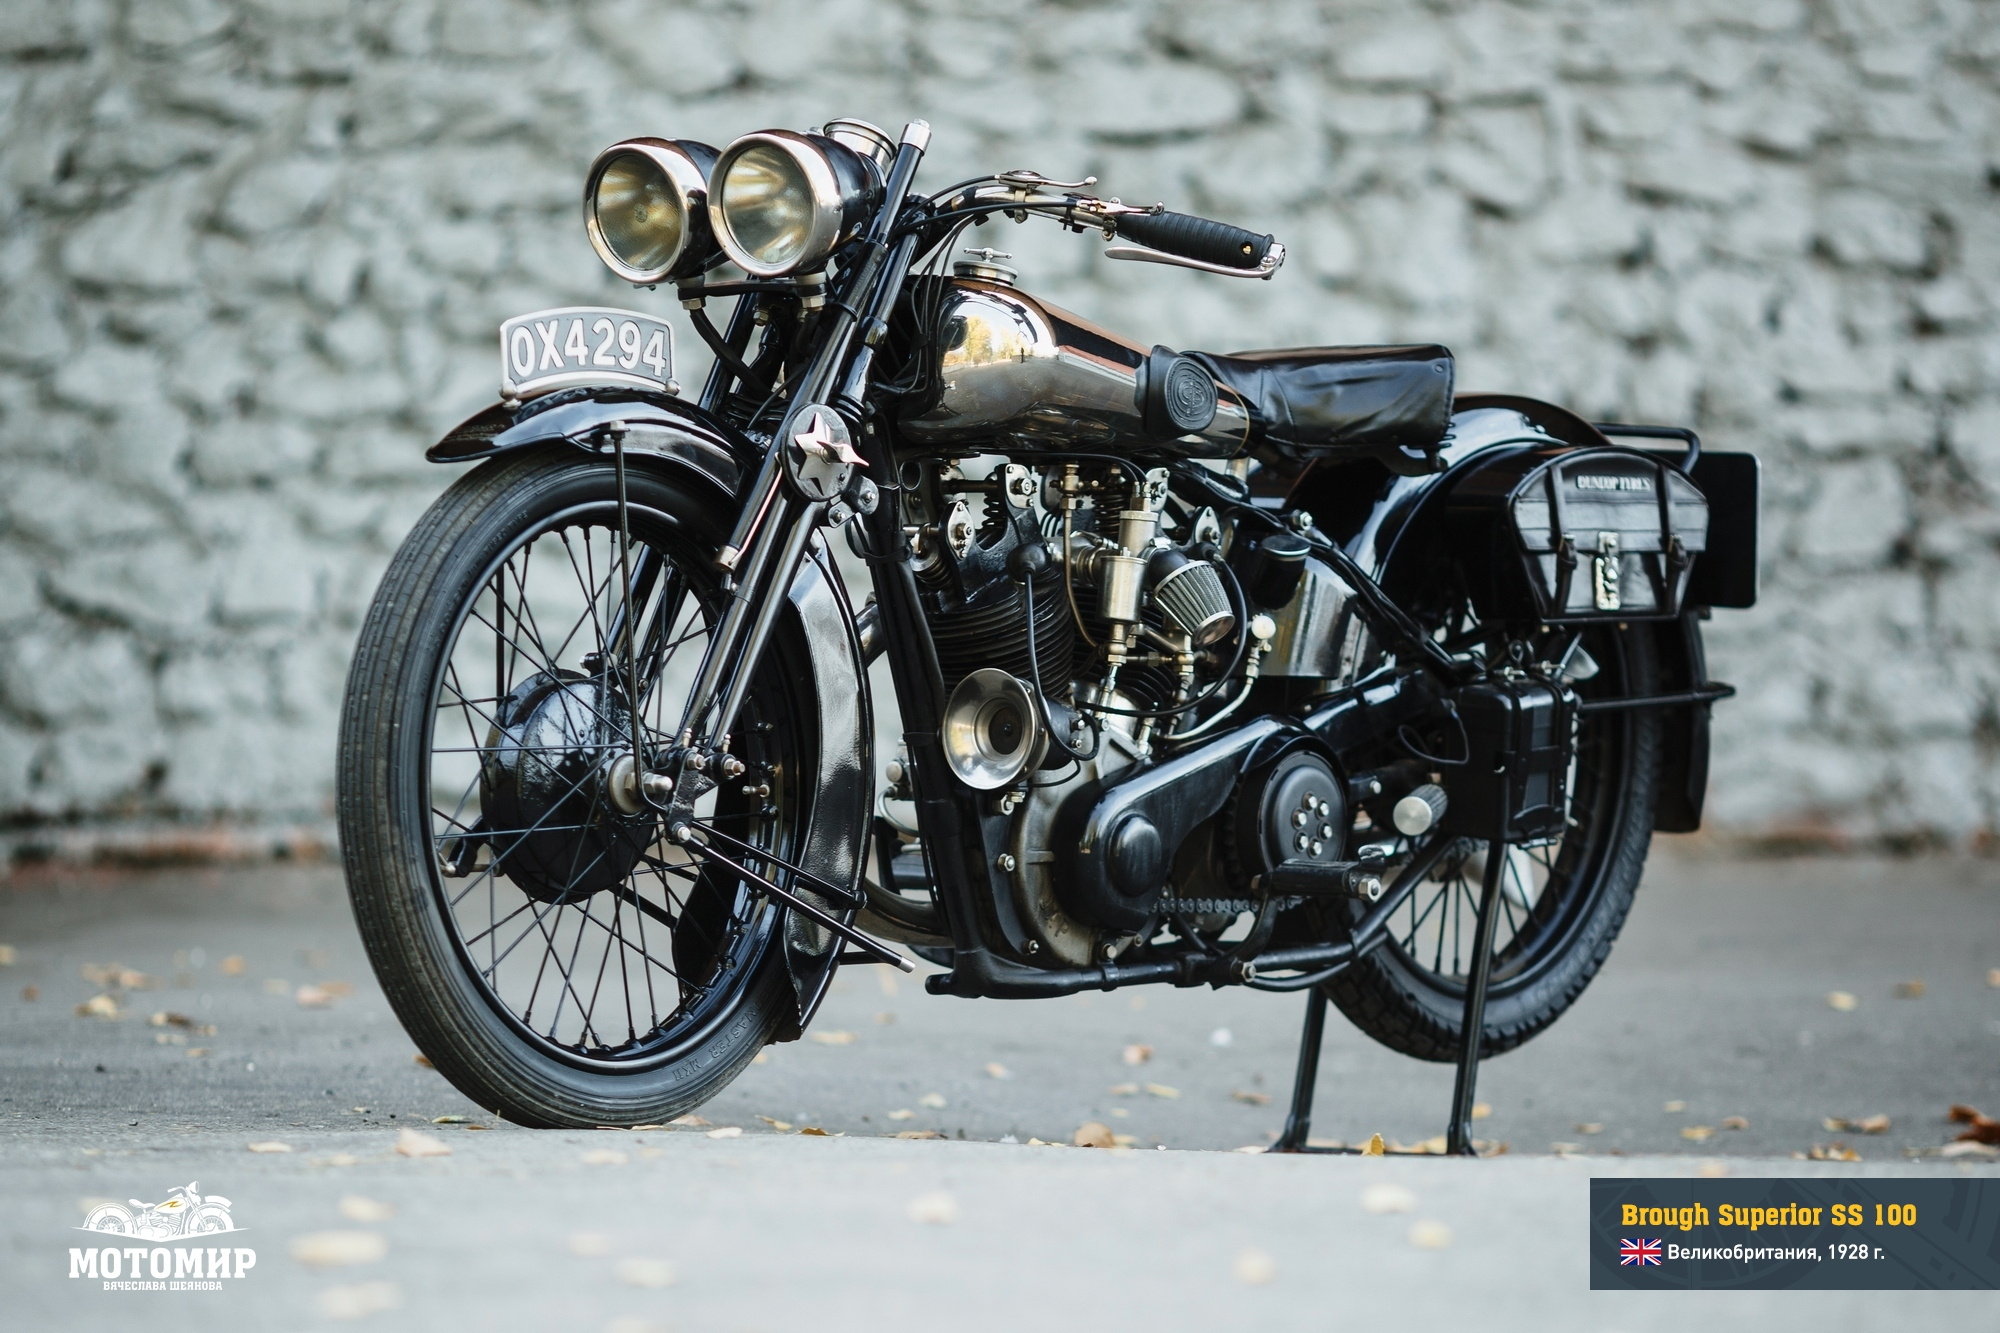 brough-superior-ss100-web-02